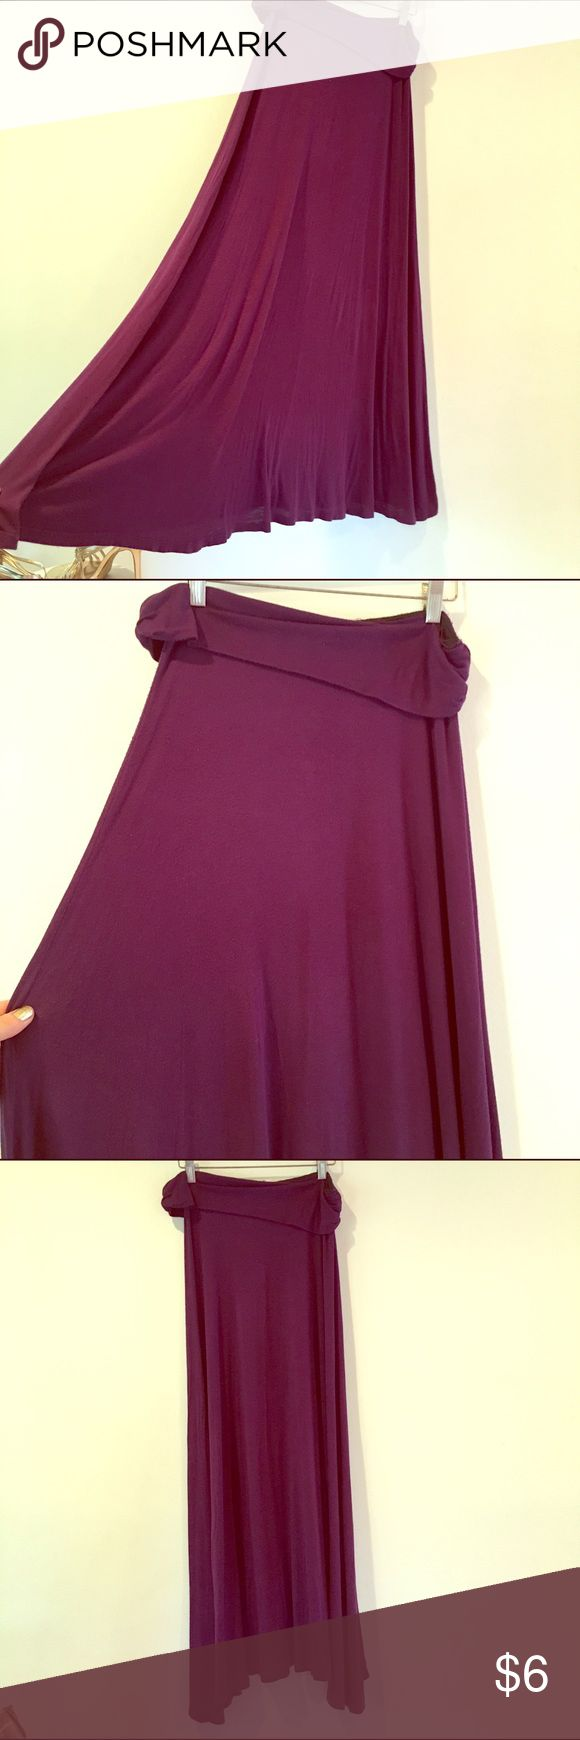 Purple maxi skirt💜 Size med/large purple maxi skirt. Pre-loved condition. Body Central Skirts Maxi